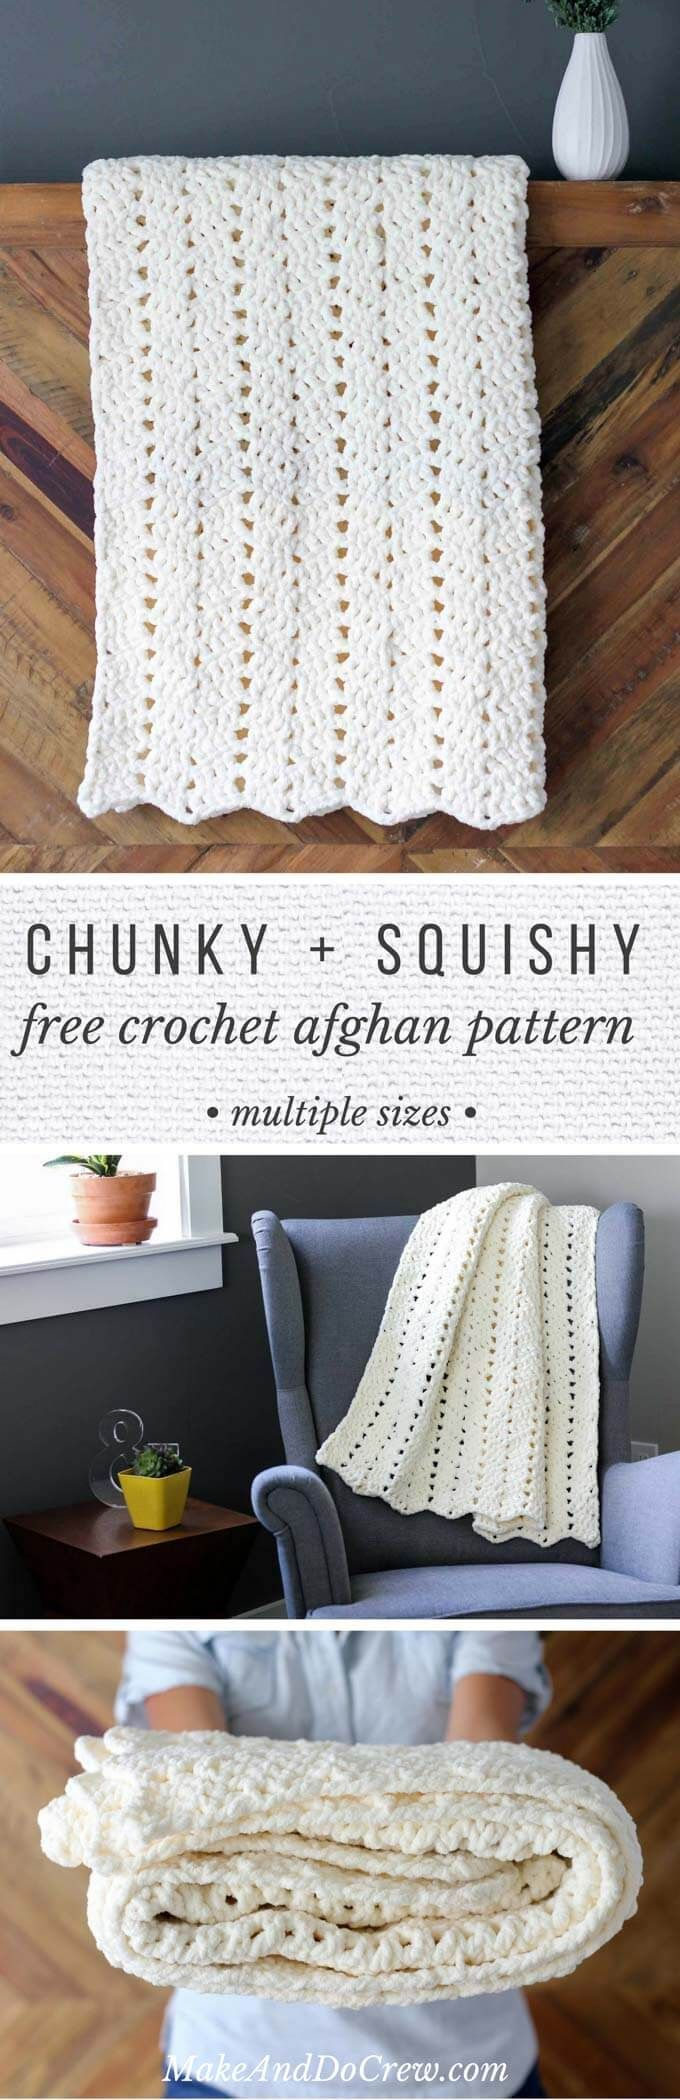 Use bulky crochet yarn to work up this simple and classy crochet blanket!